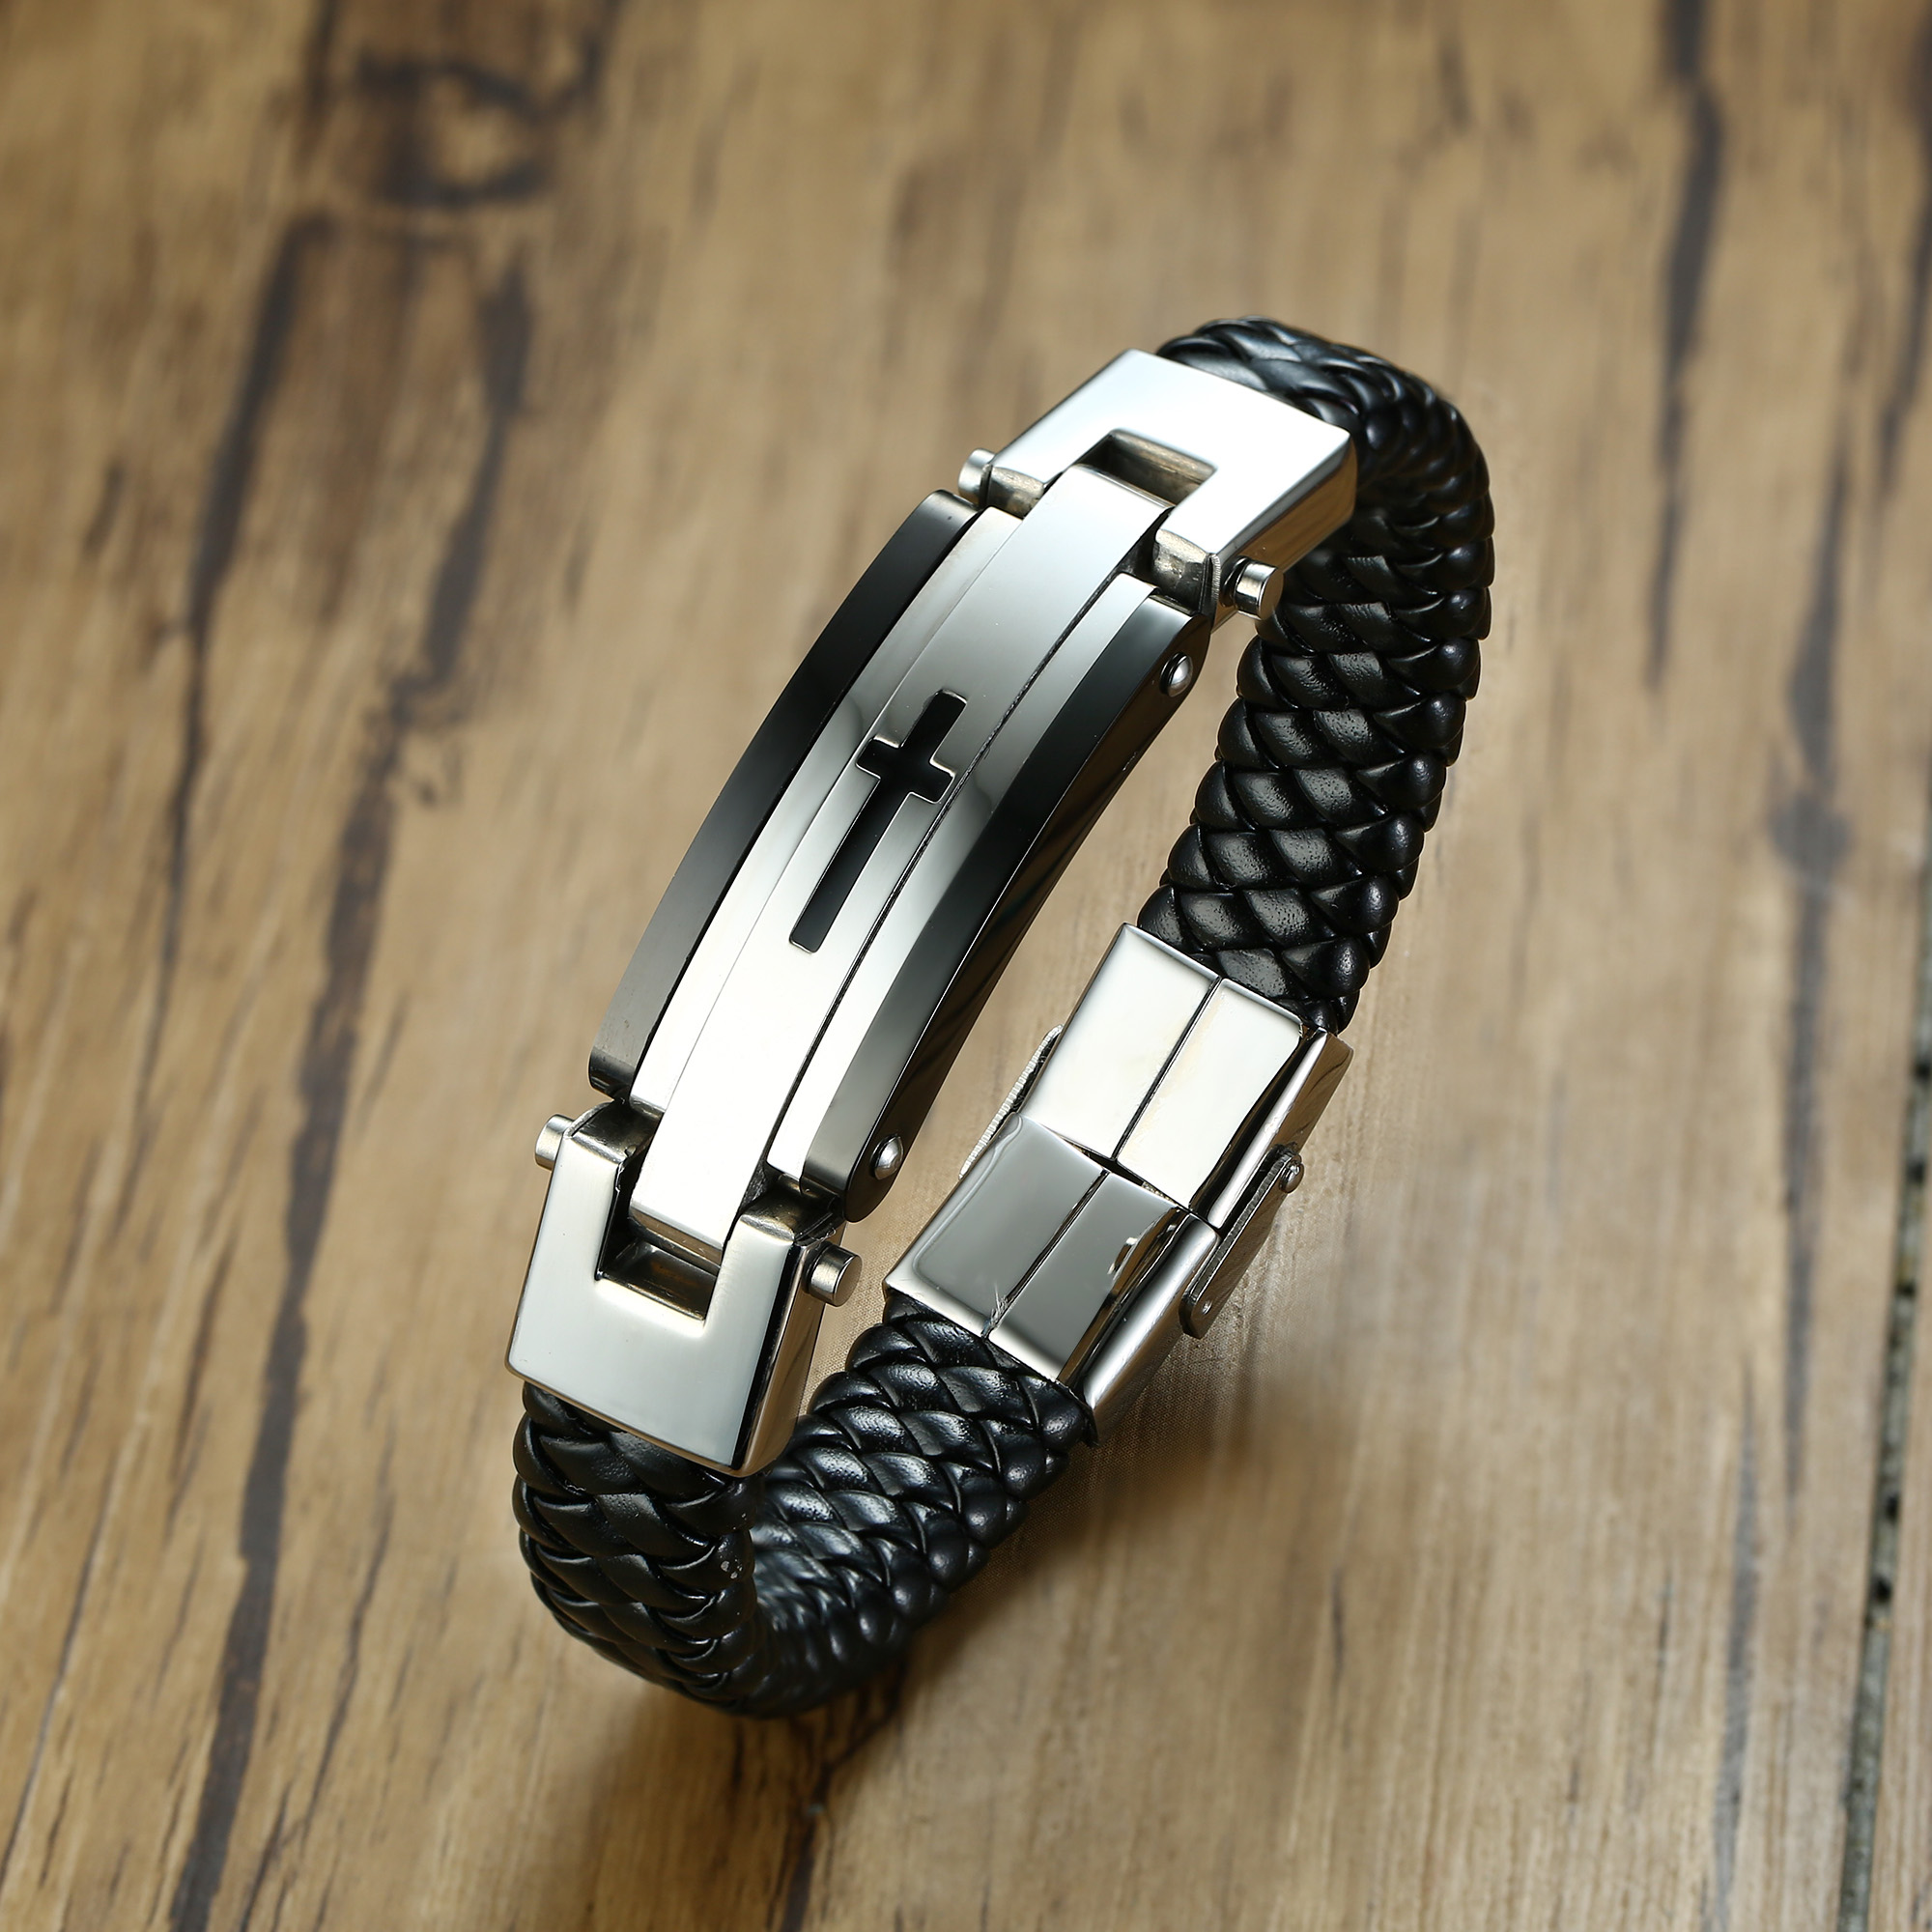 Classic and Bold Stainless Steel Charm Braided Leather Braclet Men's Crook Brand Cross Leather Bracelet Women Gift Friends